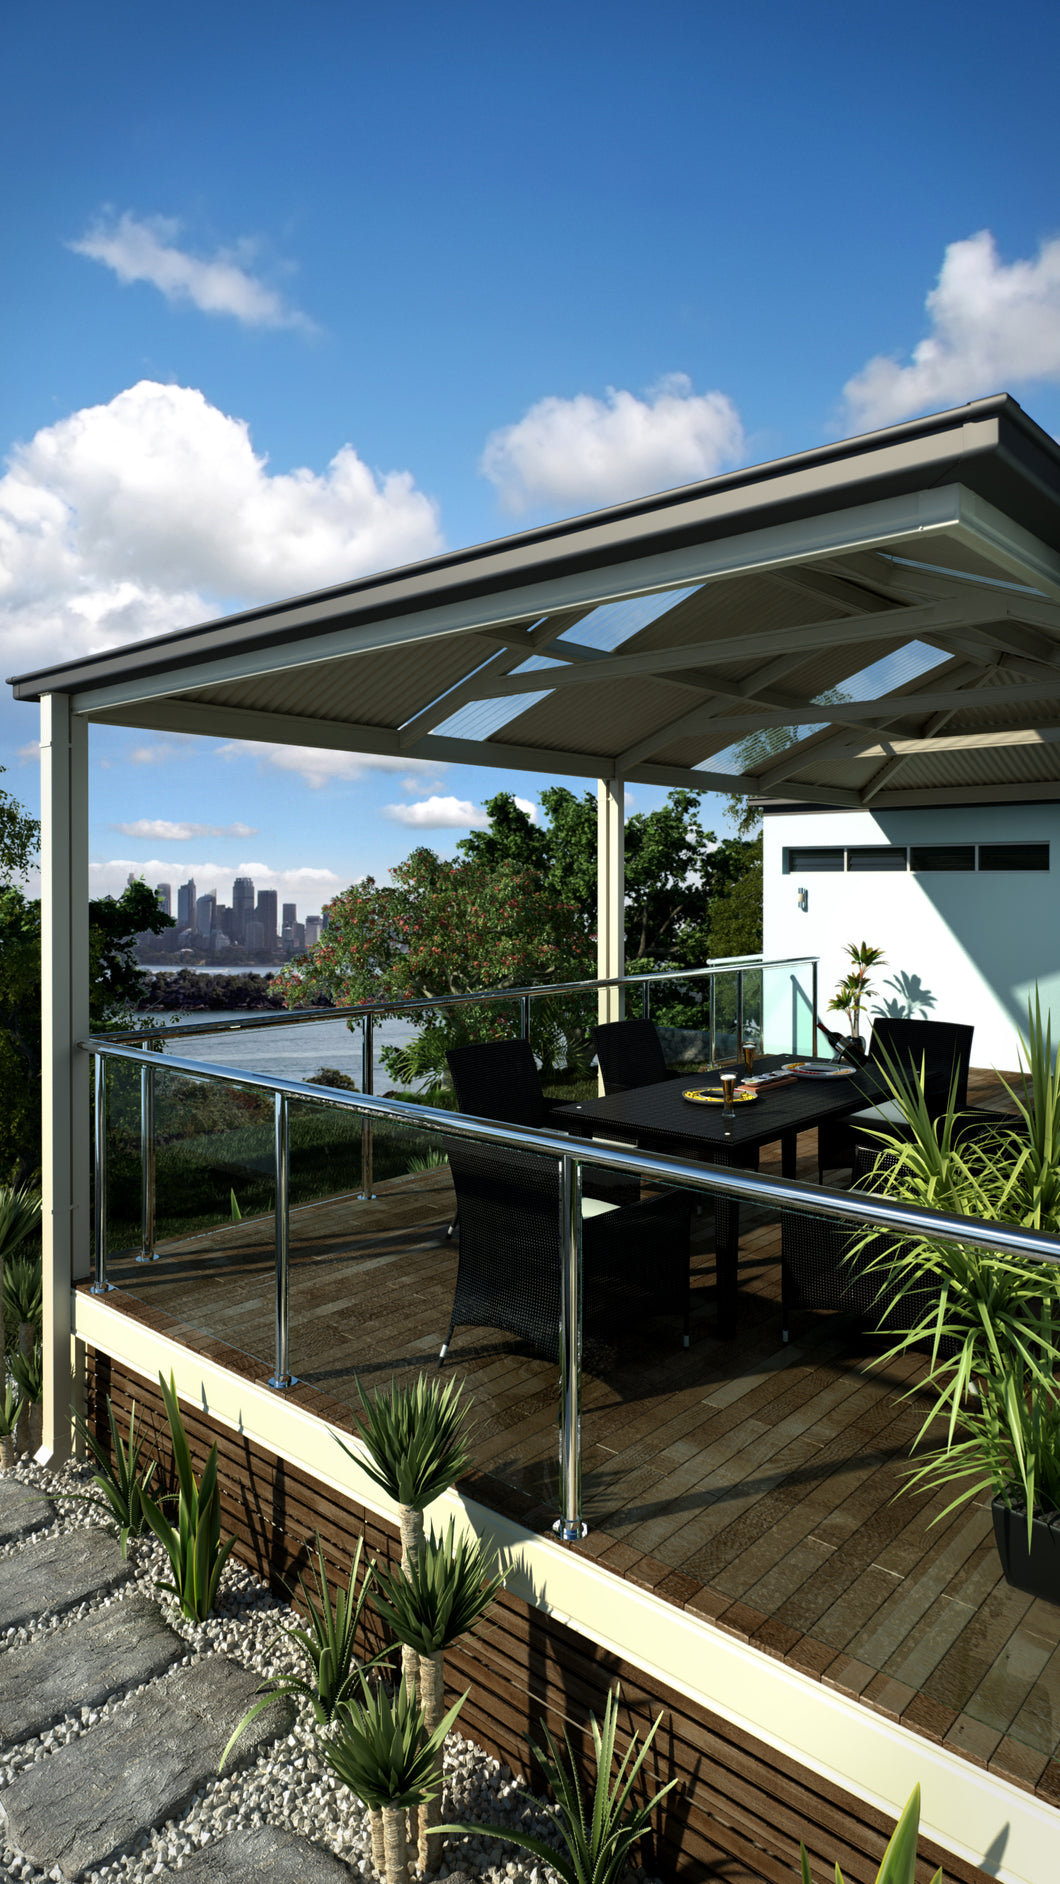 Deck and Roof - 7m x 4m - from $24,990.00 Inc GST.